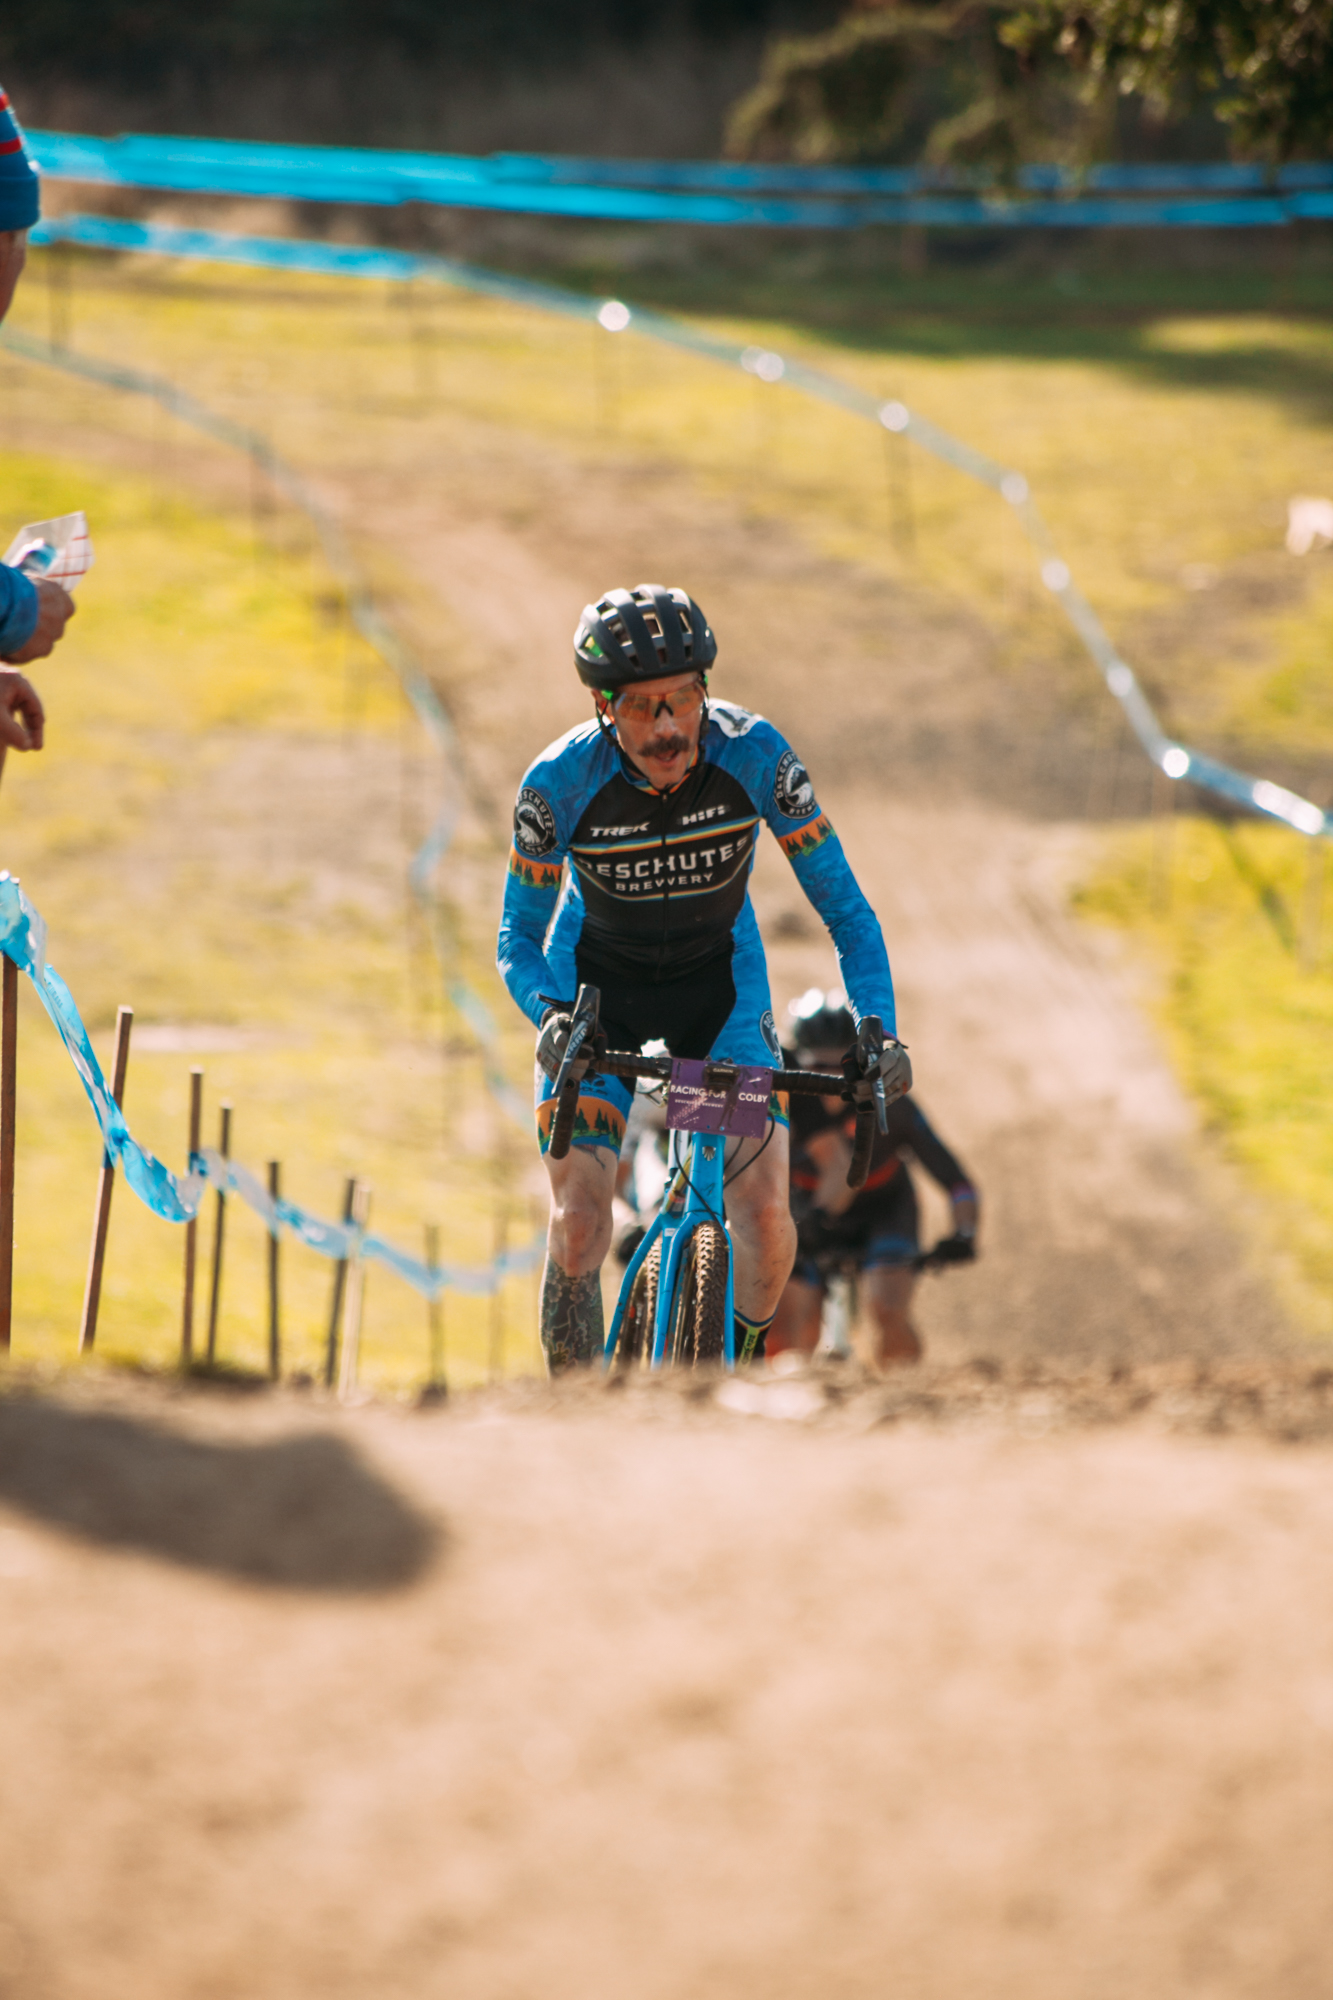 Cyclocross18_CCCX_RainierHS-194-mettlecycling.jpg